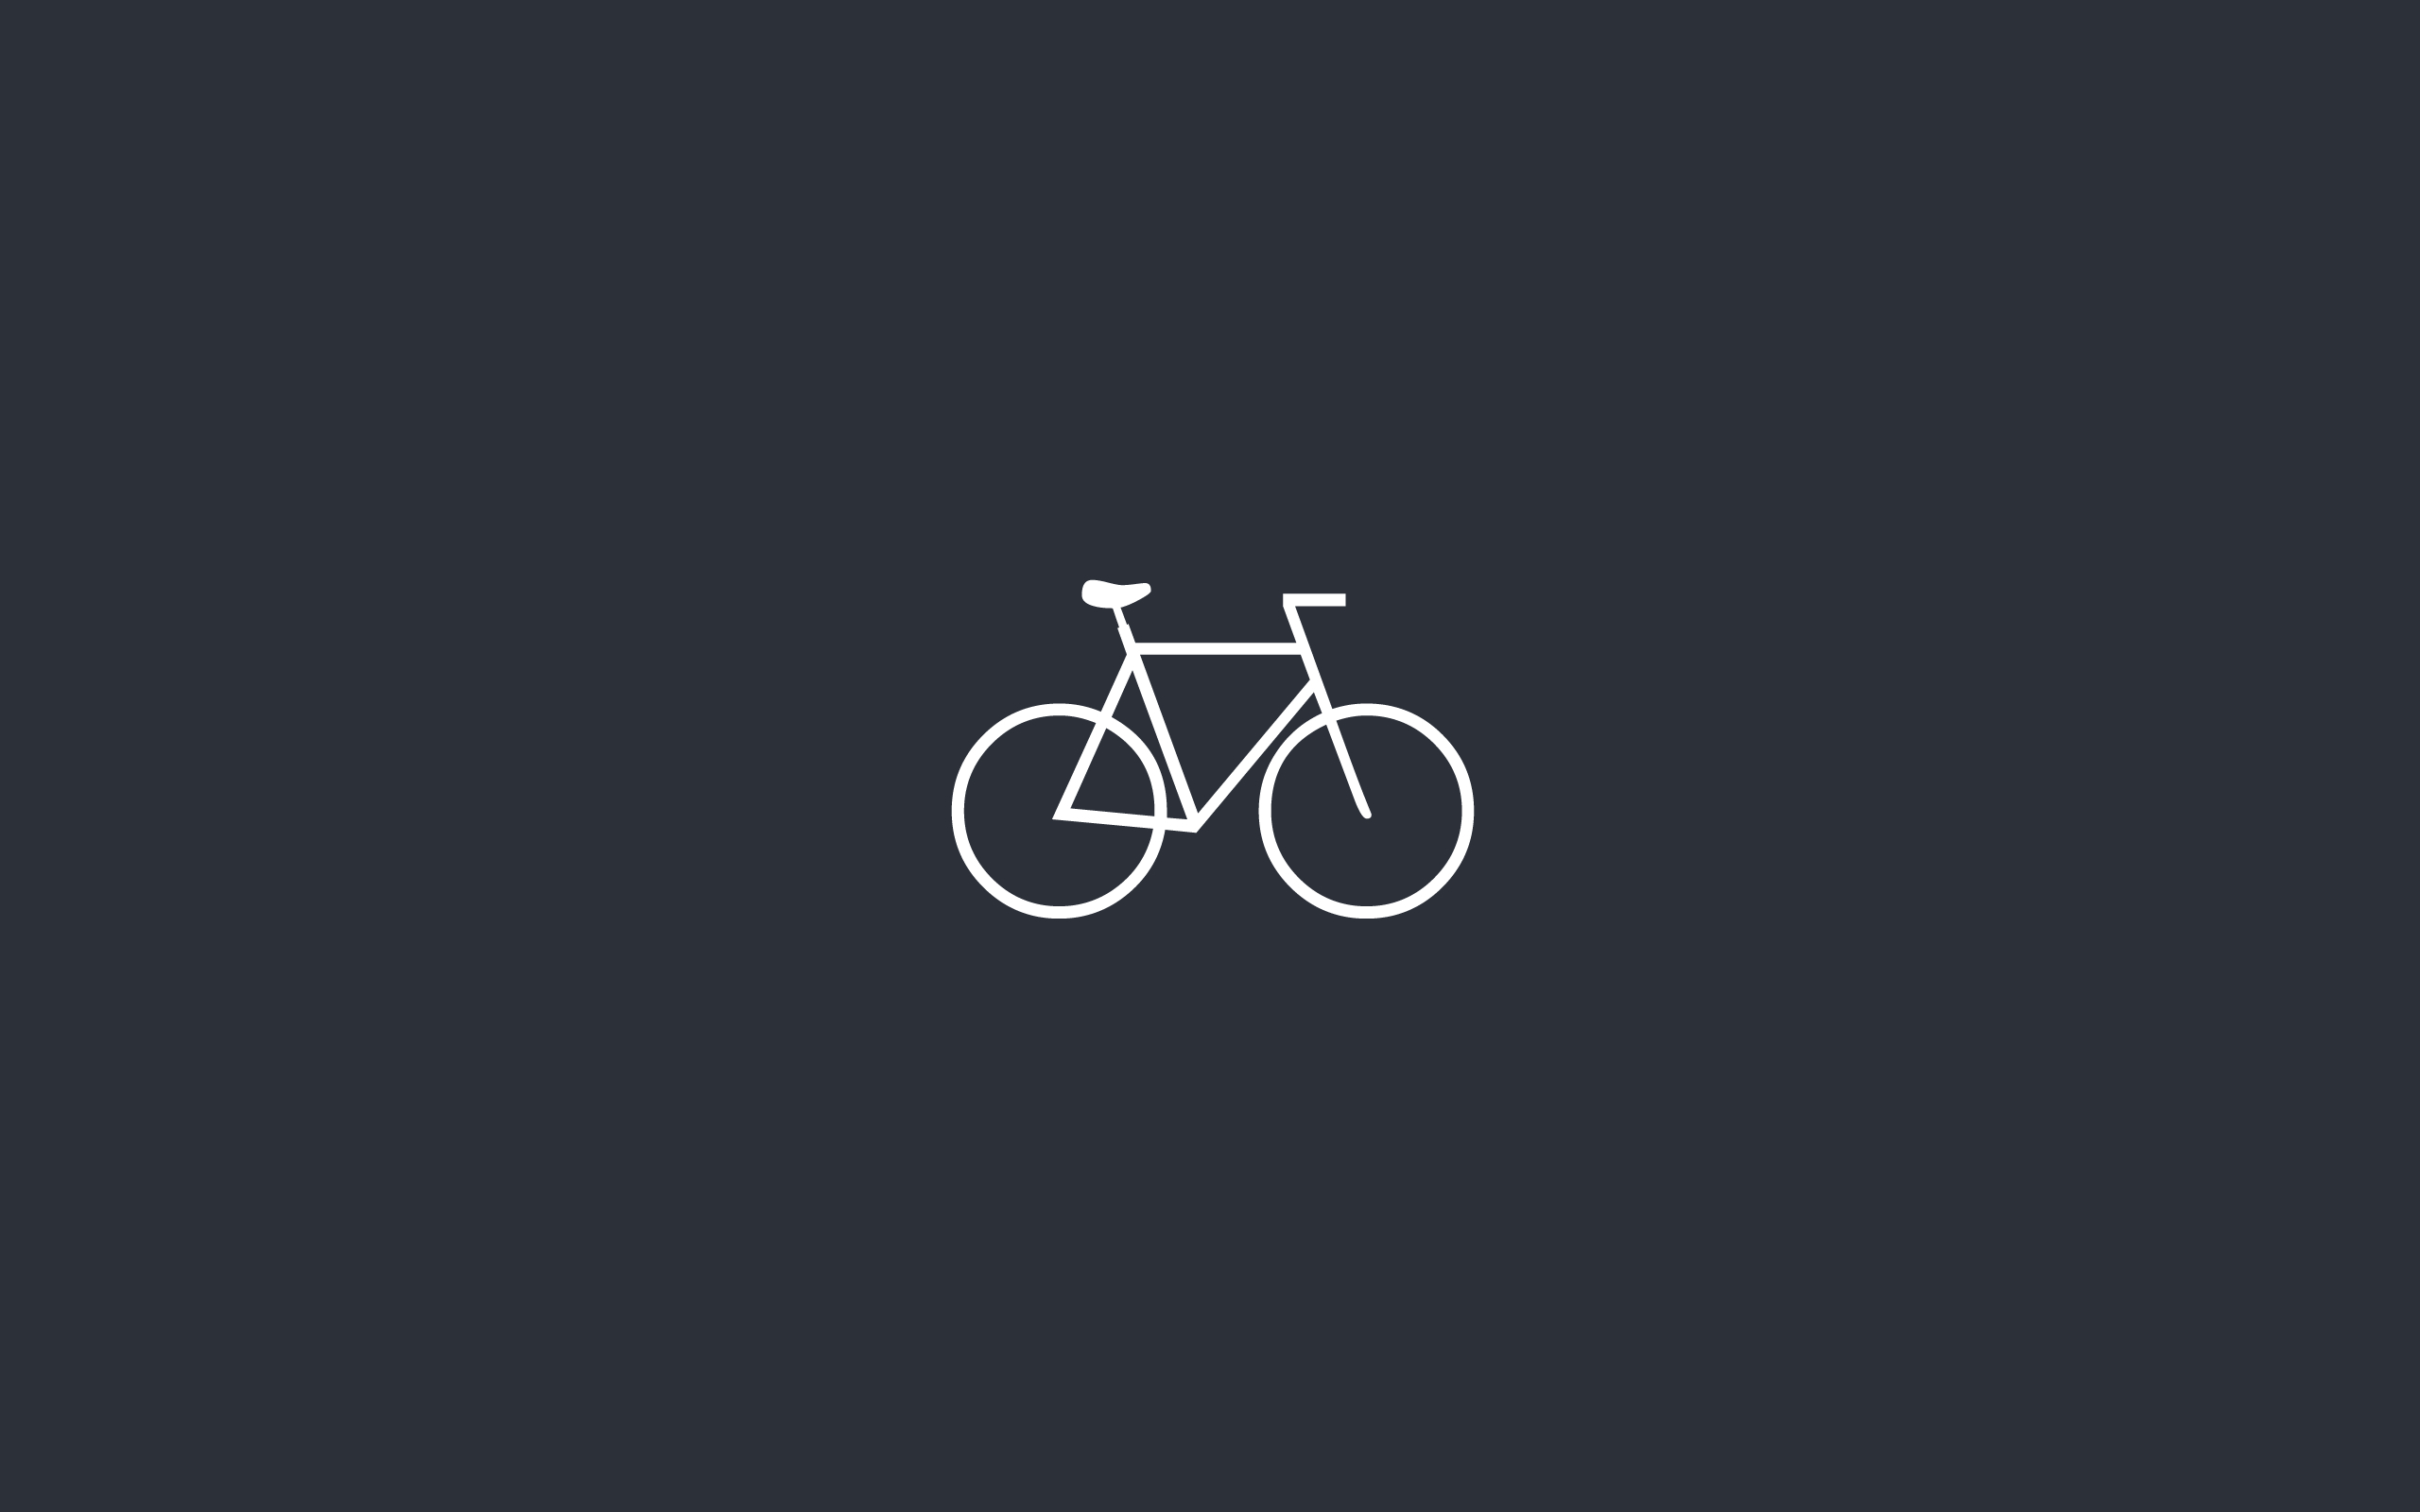 bike minimalistic Bicycles HD Wallpaper